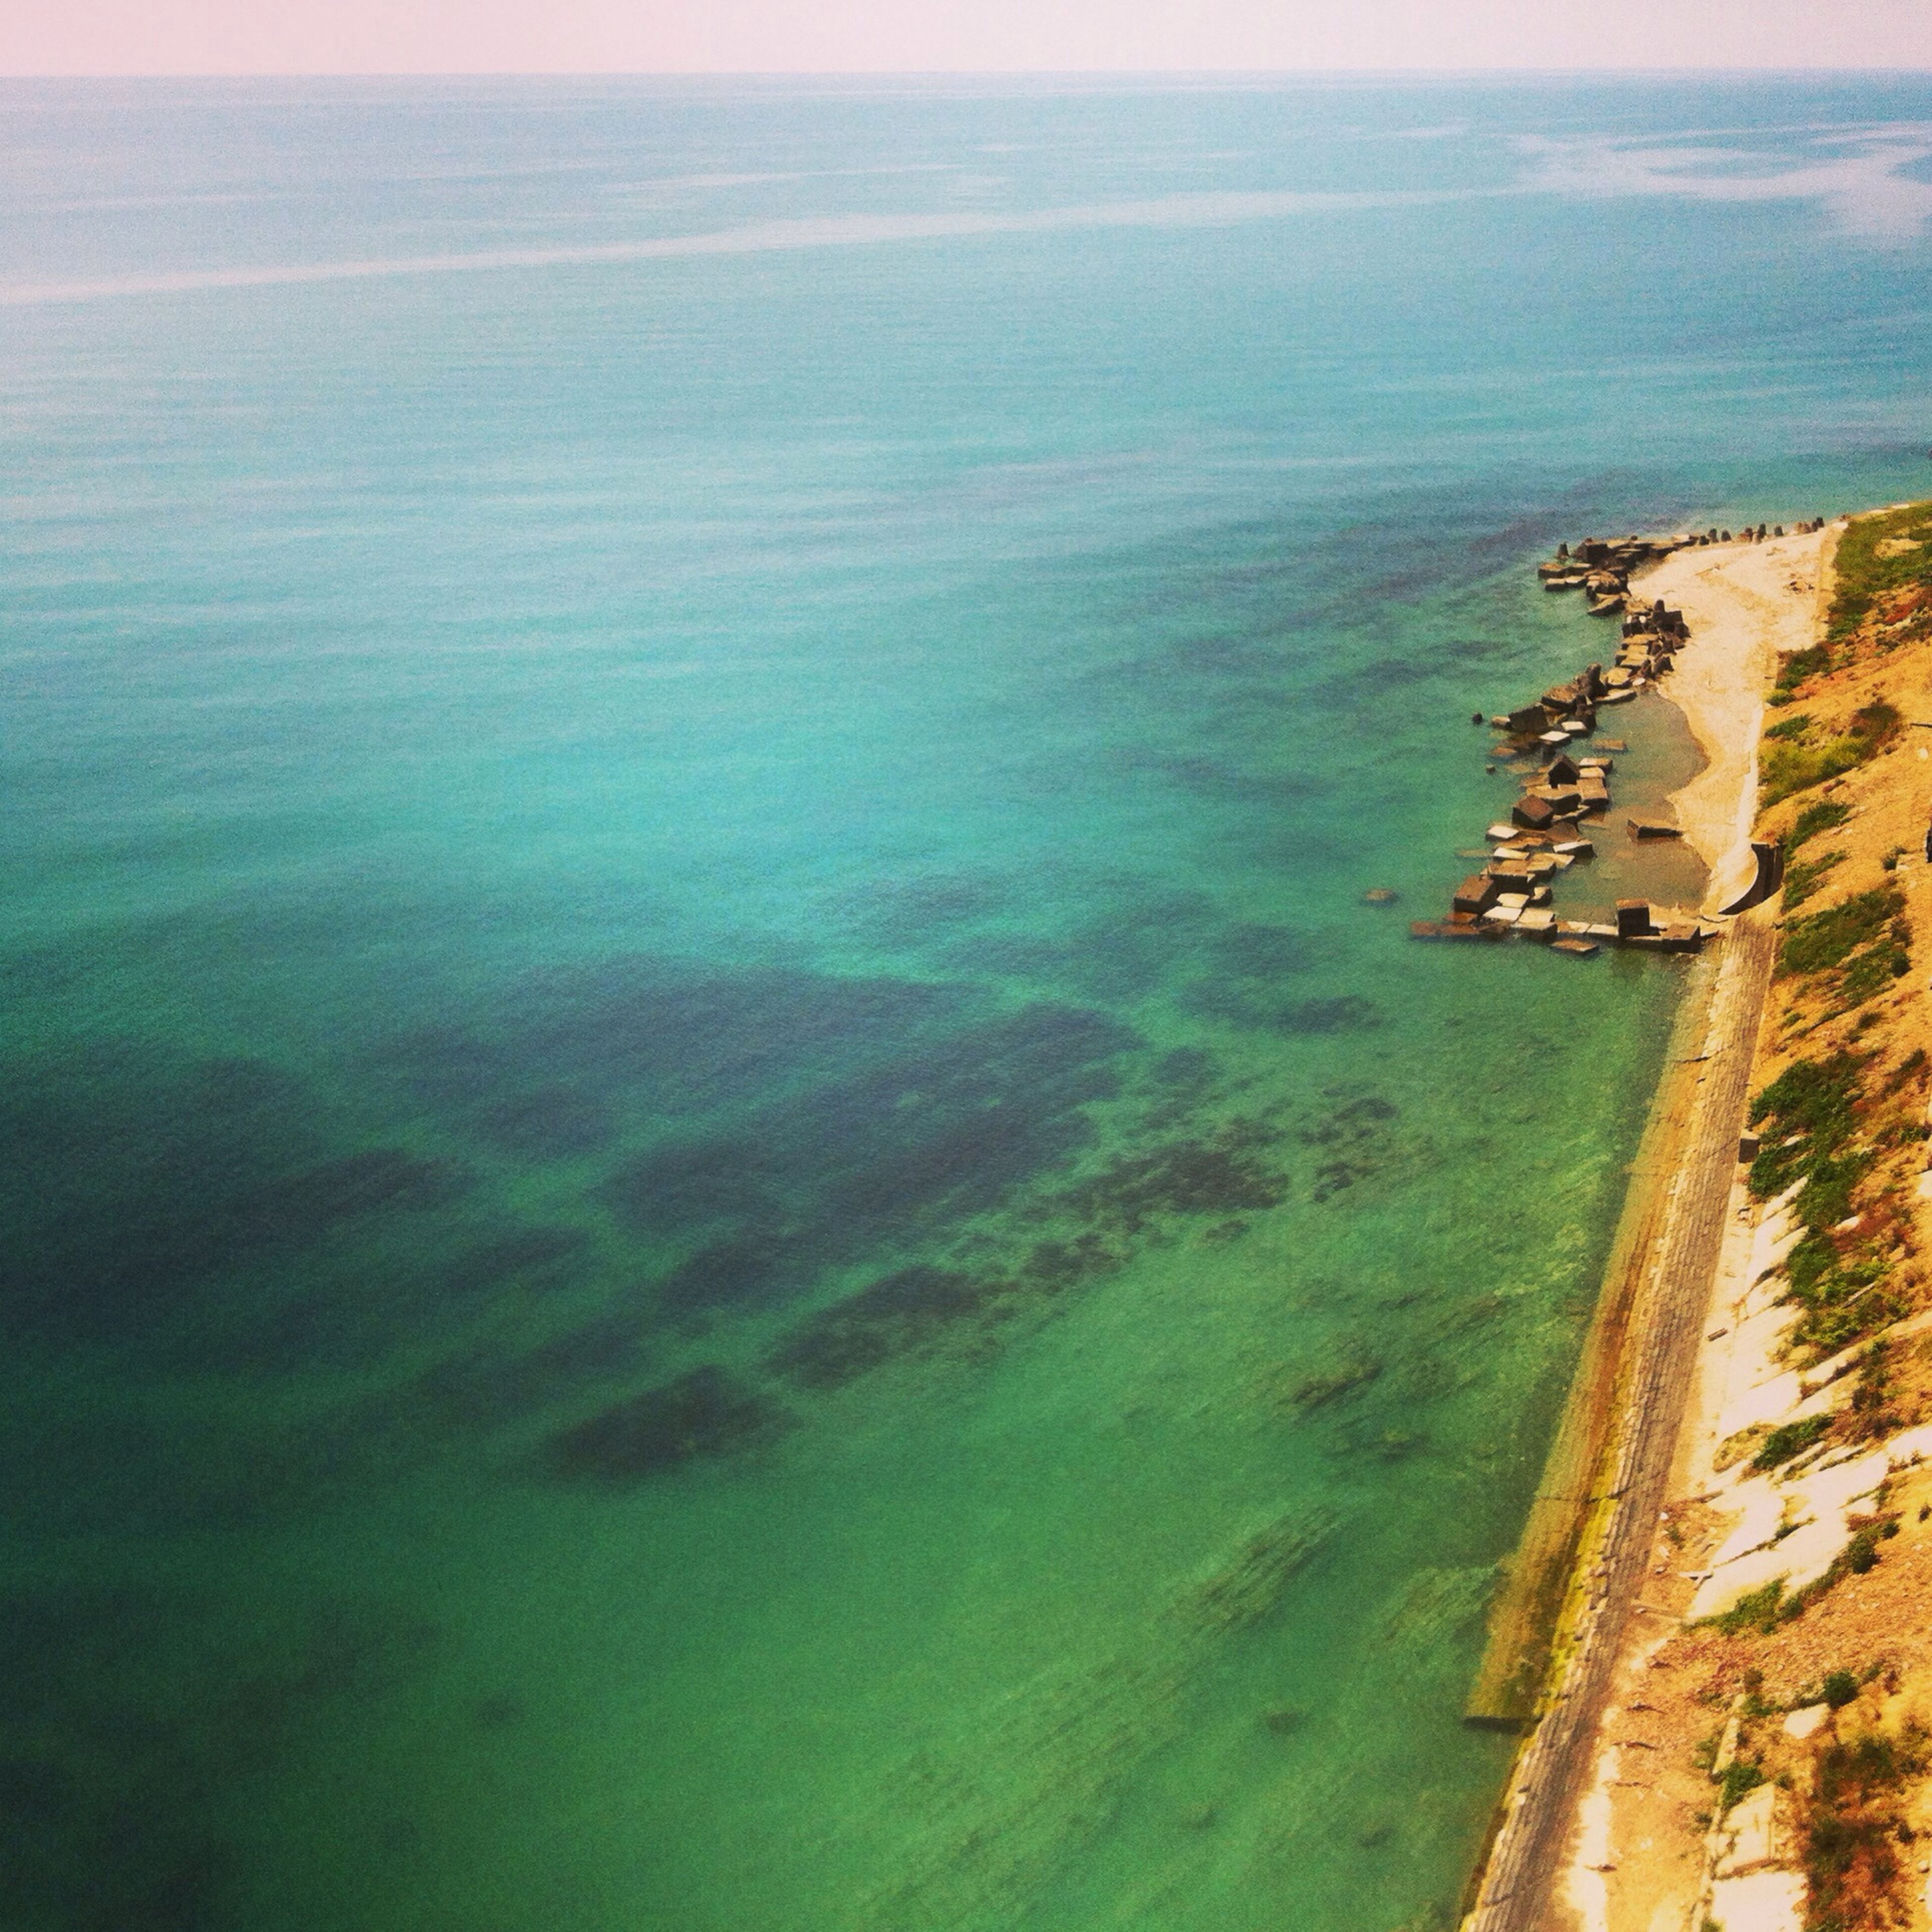 sea, water, horizon over water, high angle view, scenics, tranquil scene, tranquility, blue, beauty in nature, coastline, nature, built structure, architecture, seascape, idyllic, building exterior, beach, sky, ocean, shore